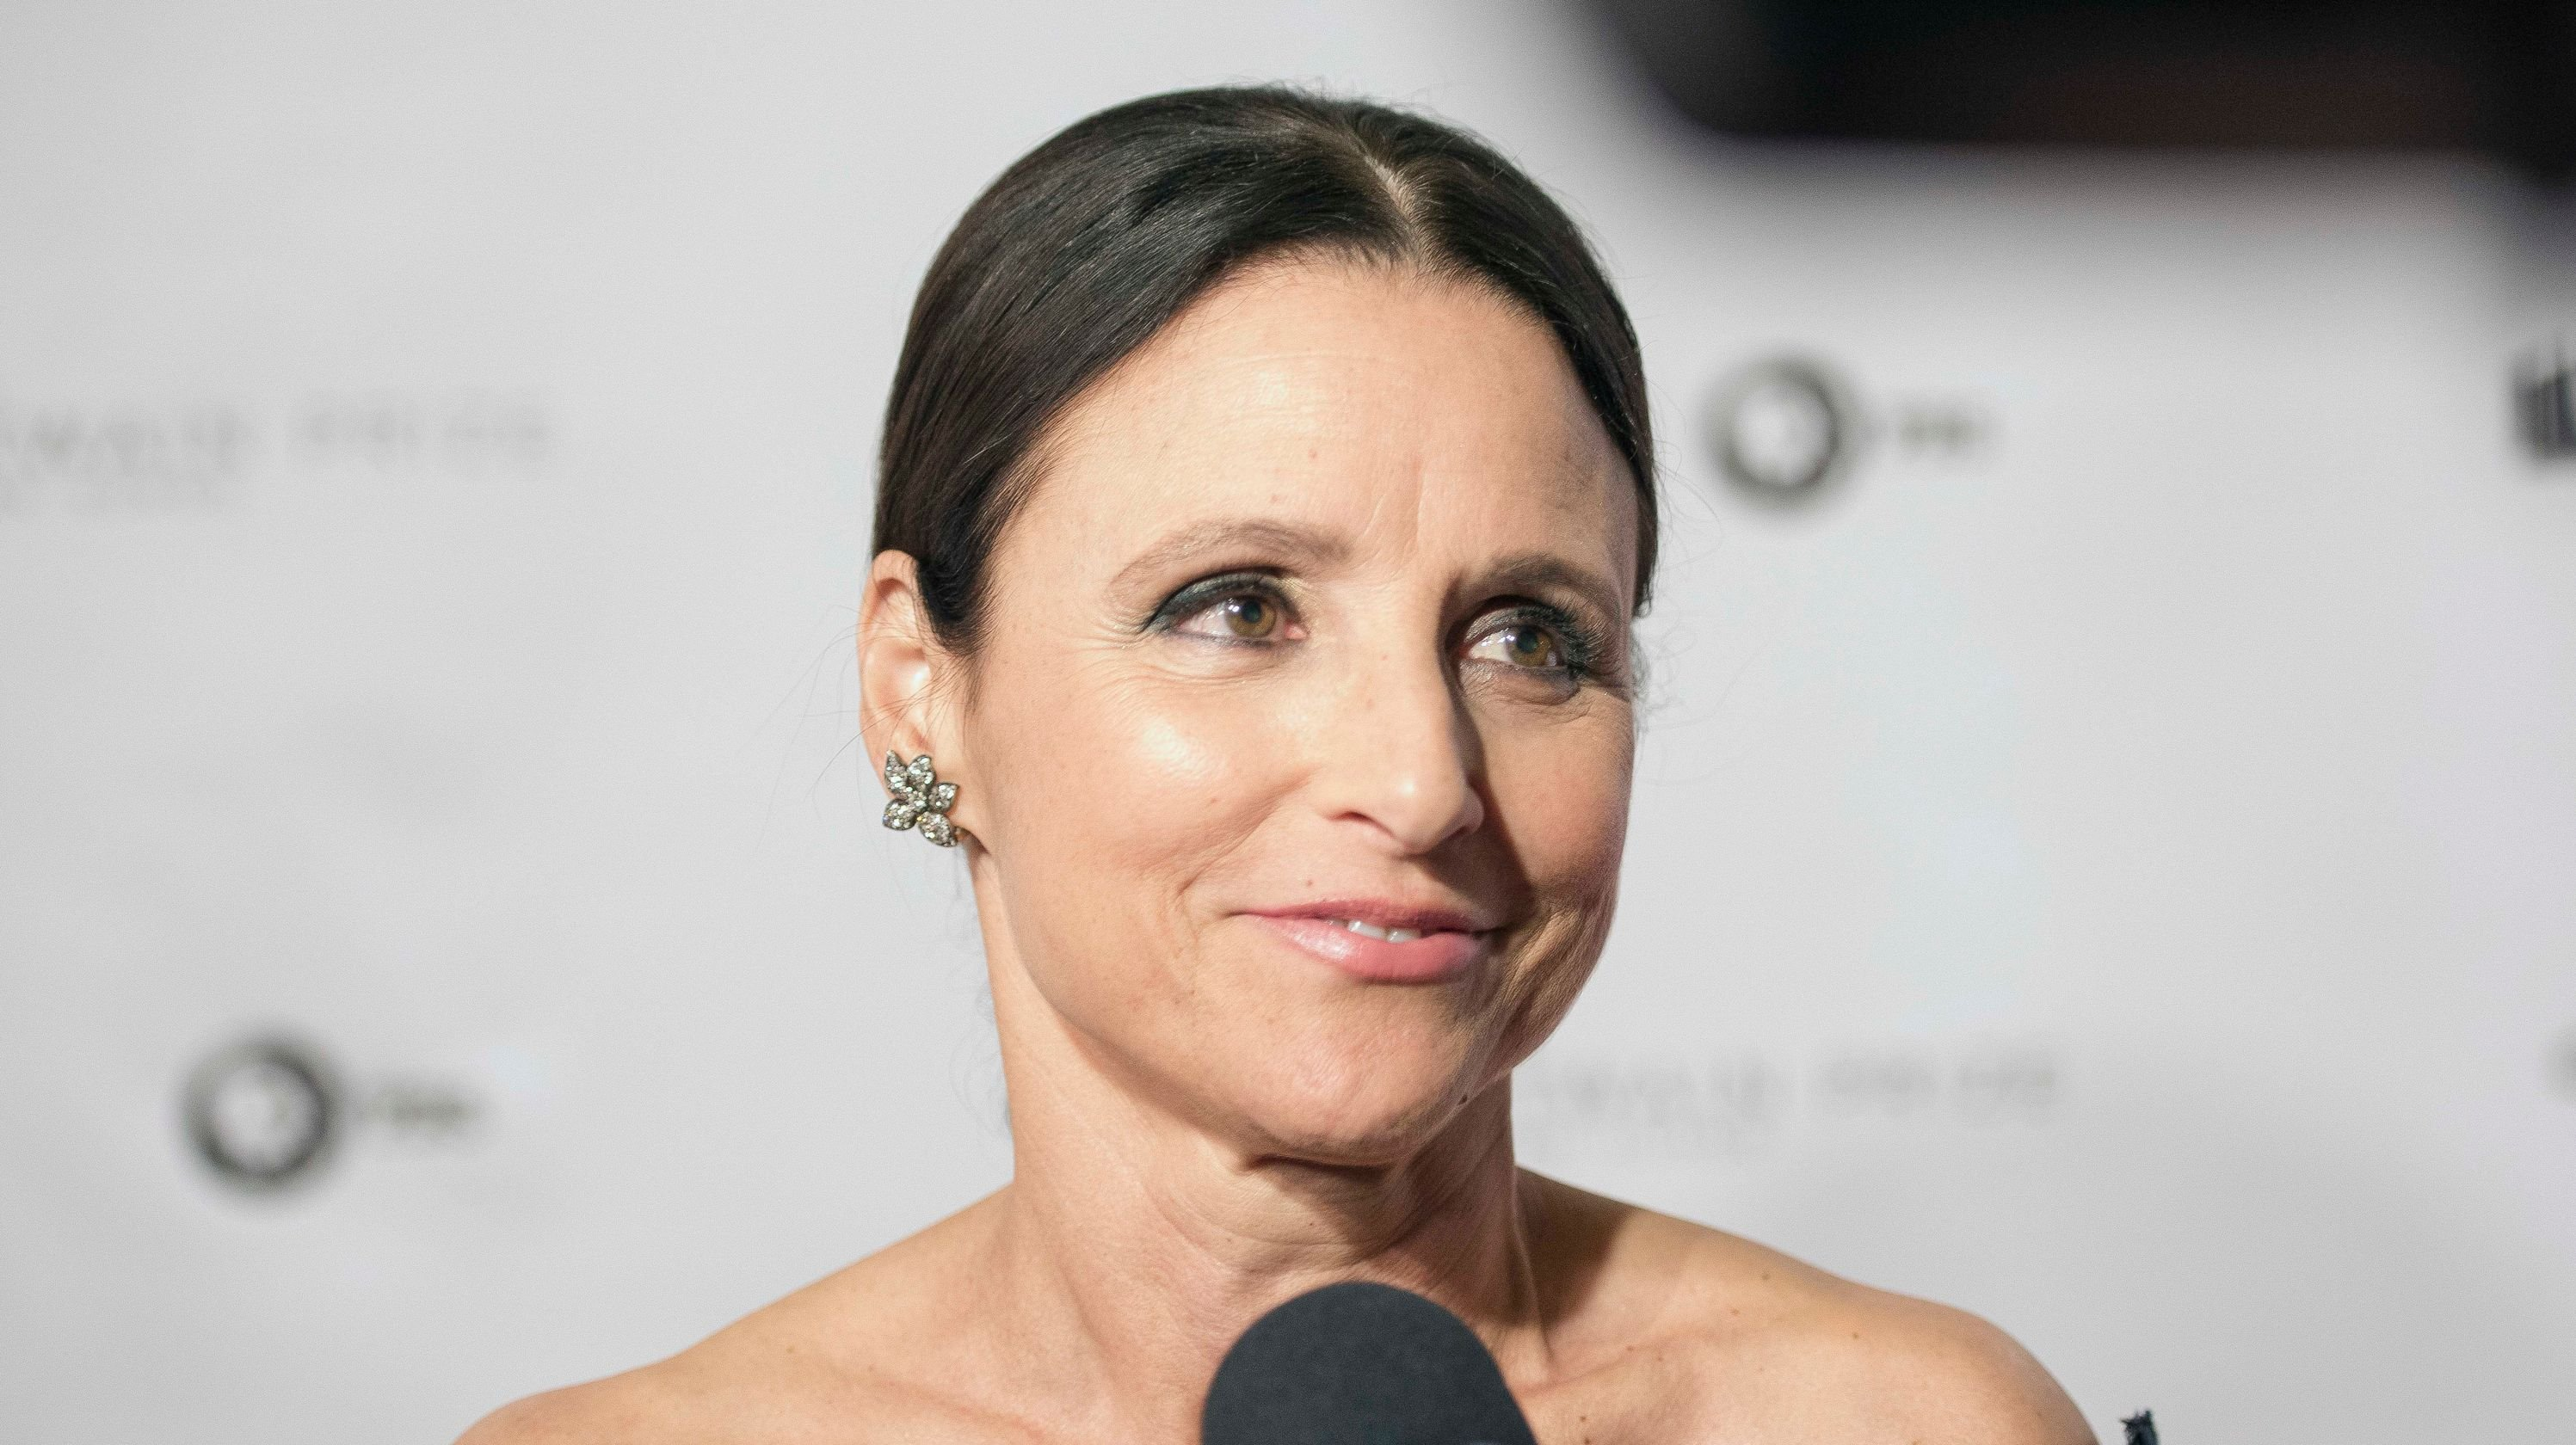 Julia Louis-Dreyfus has had 'a rough couple of years' with cancer treatment, sister's death